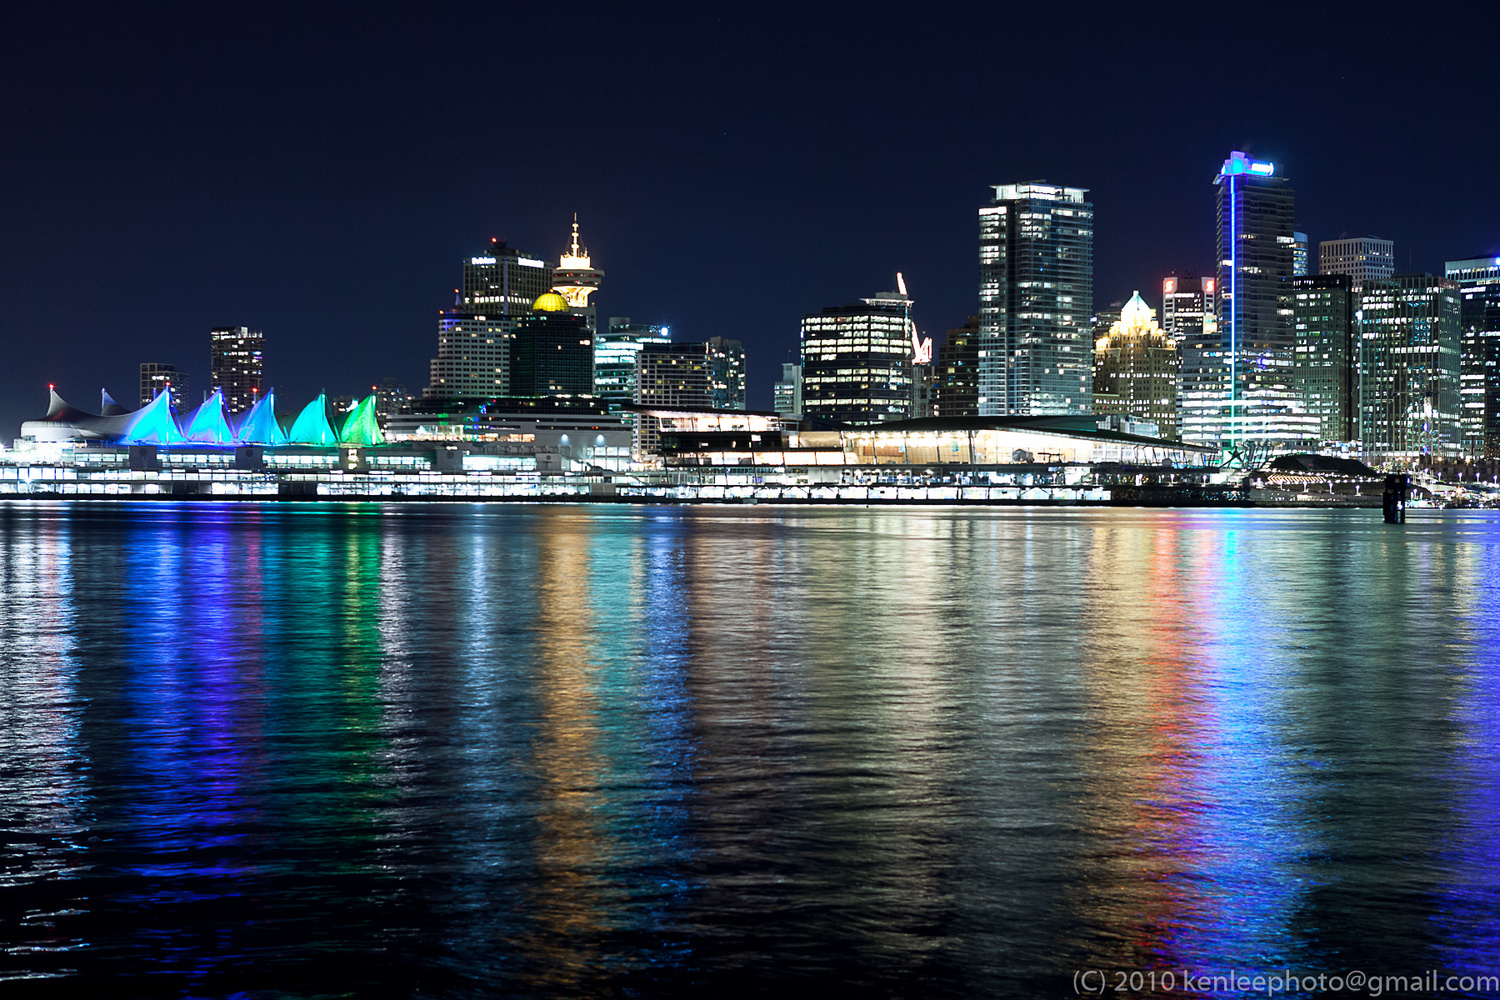 Night Lights of Canada Place and Convention Center by Kenneth Lee